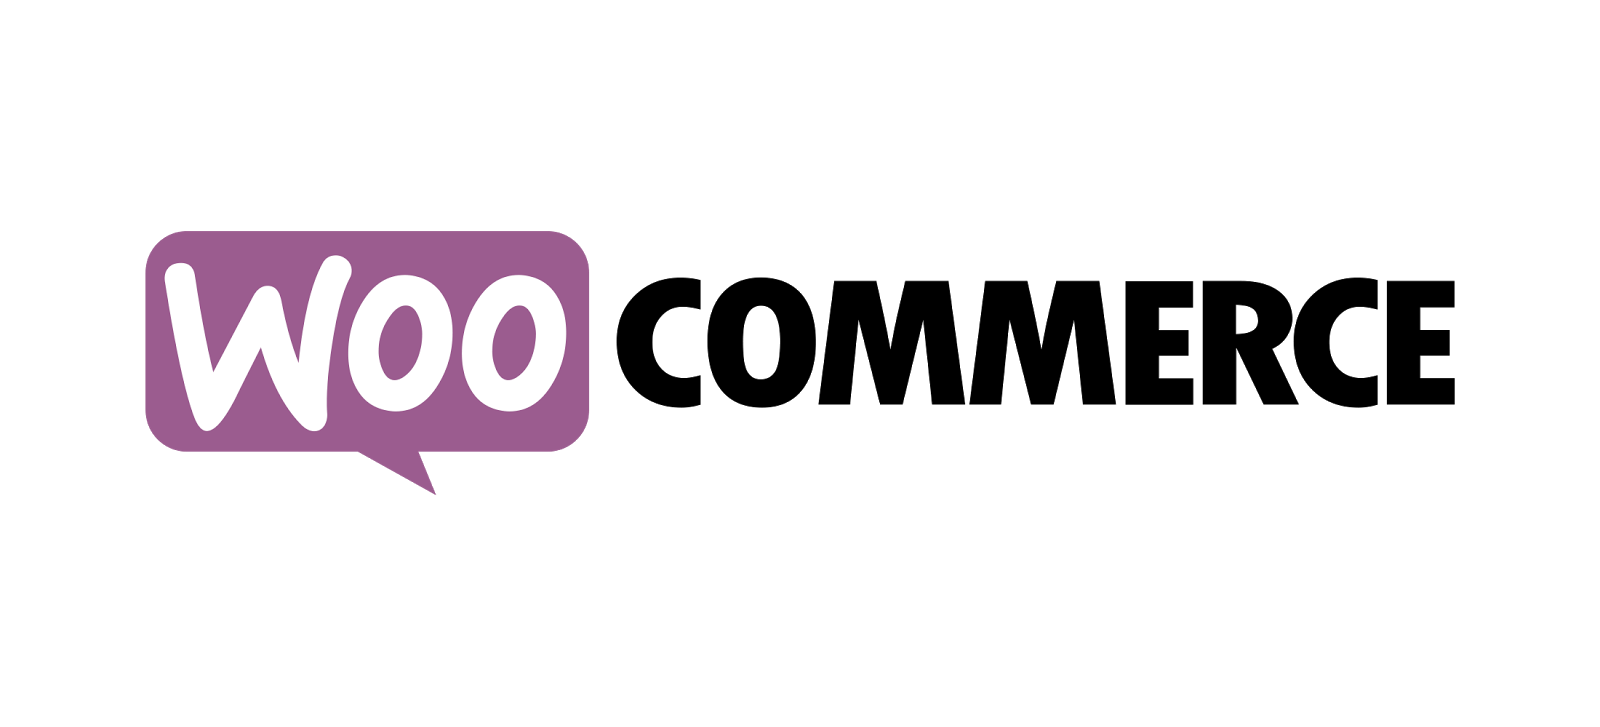 How to Install WooCommerce ?